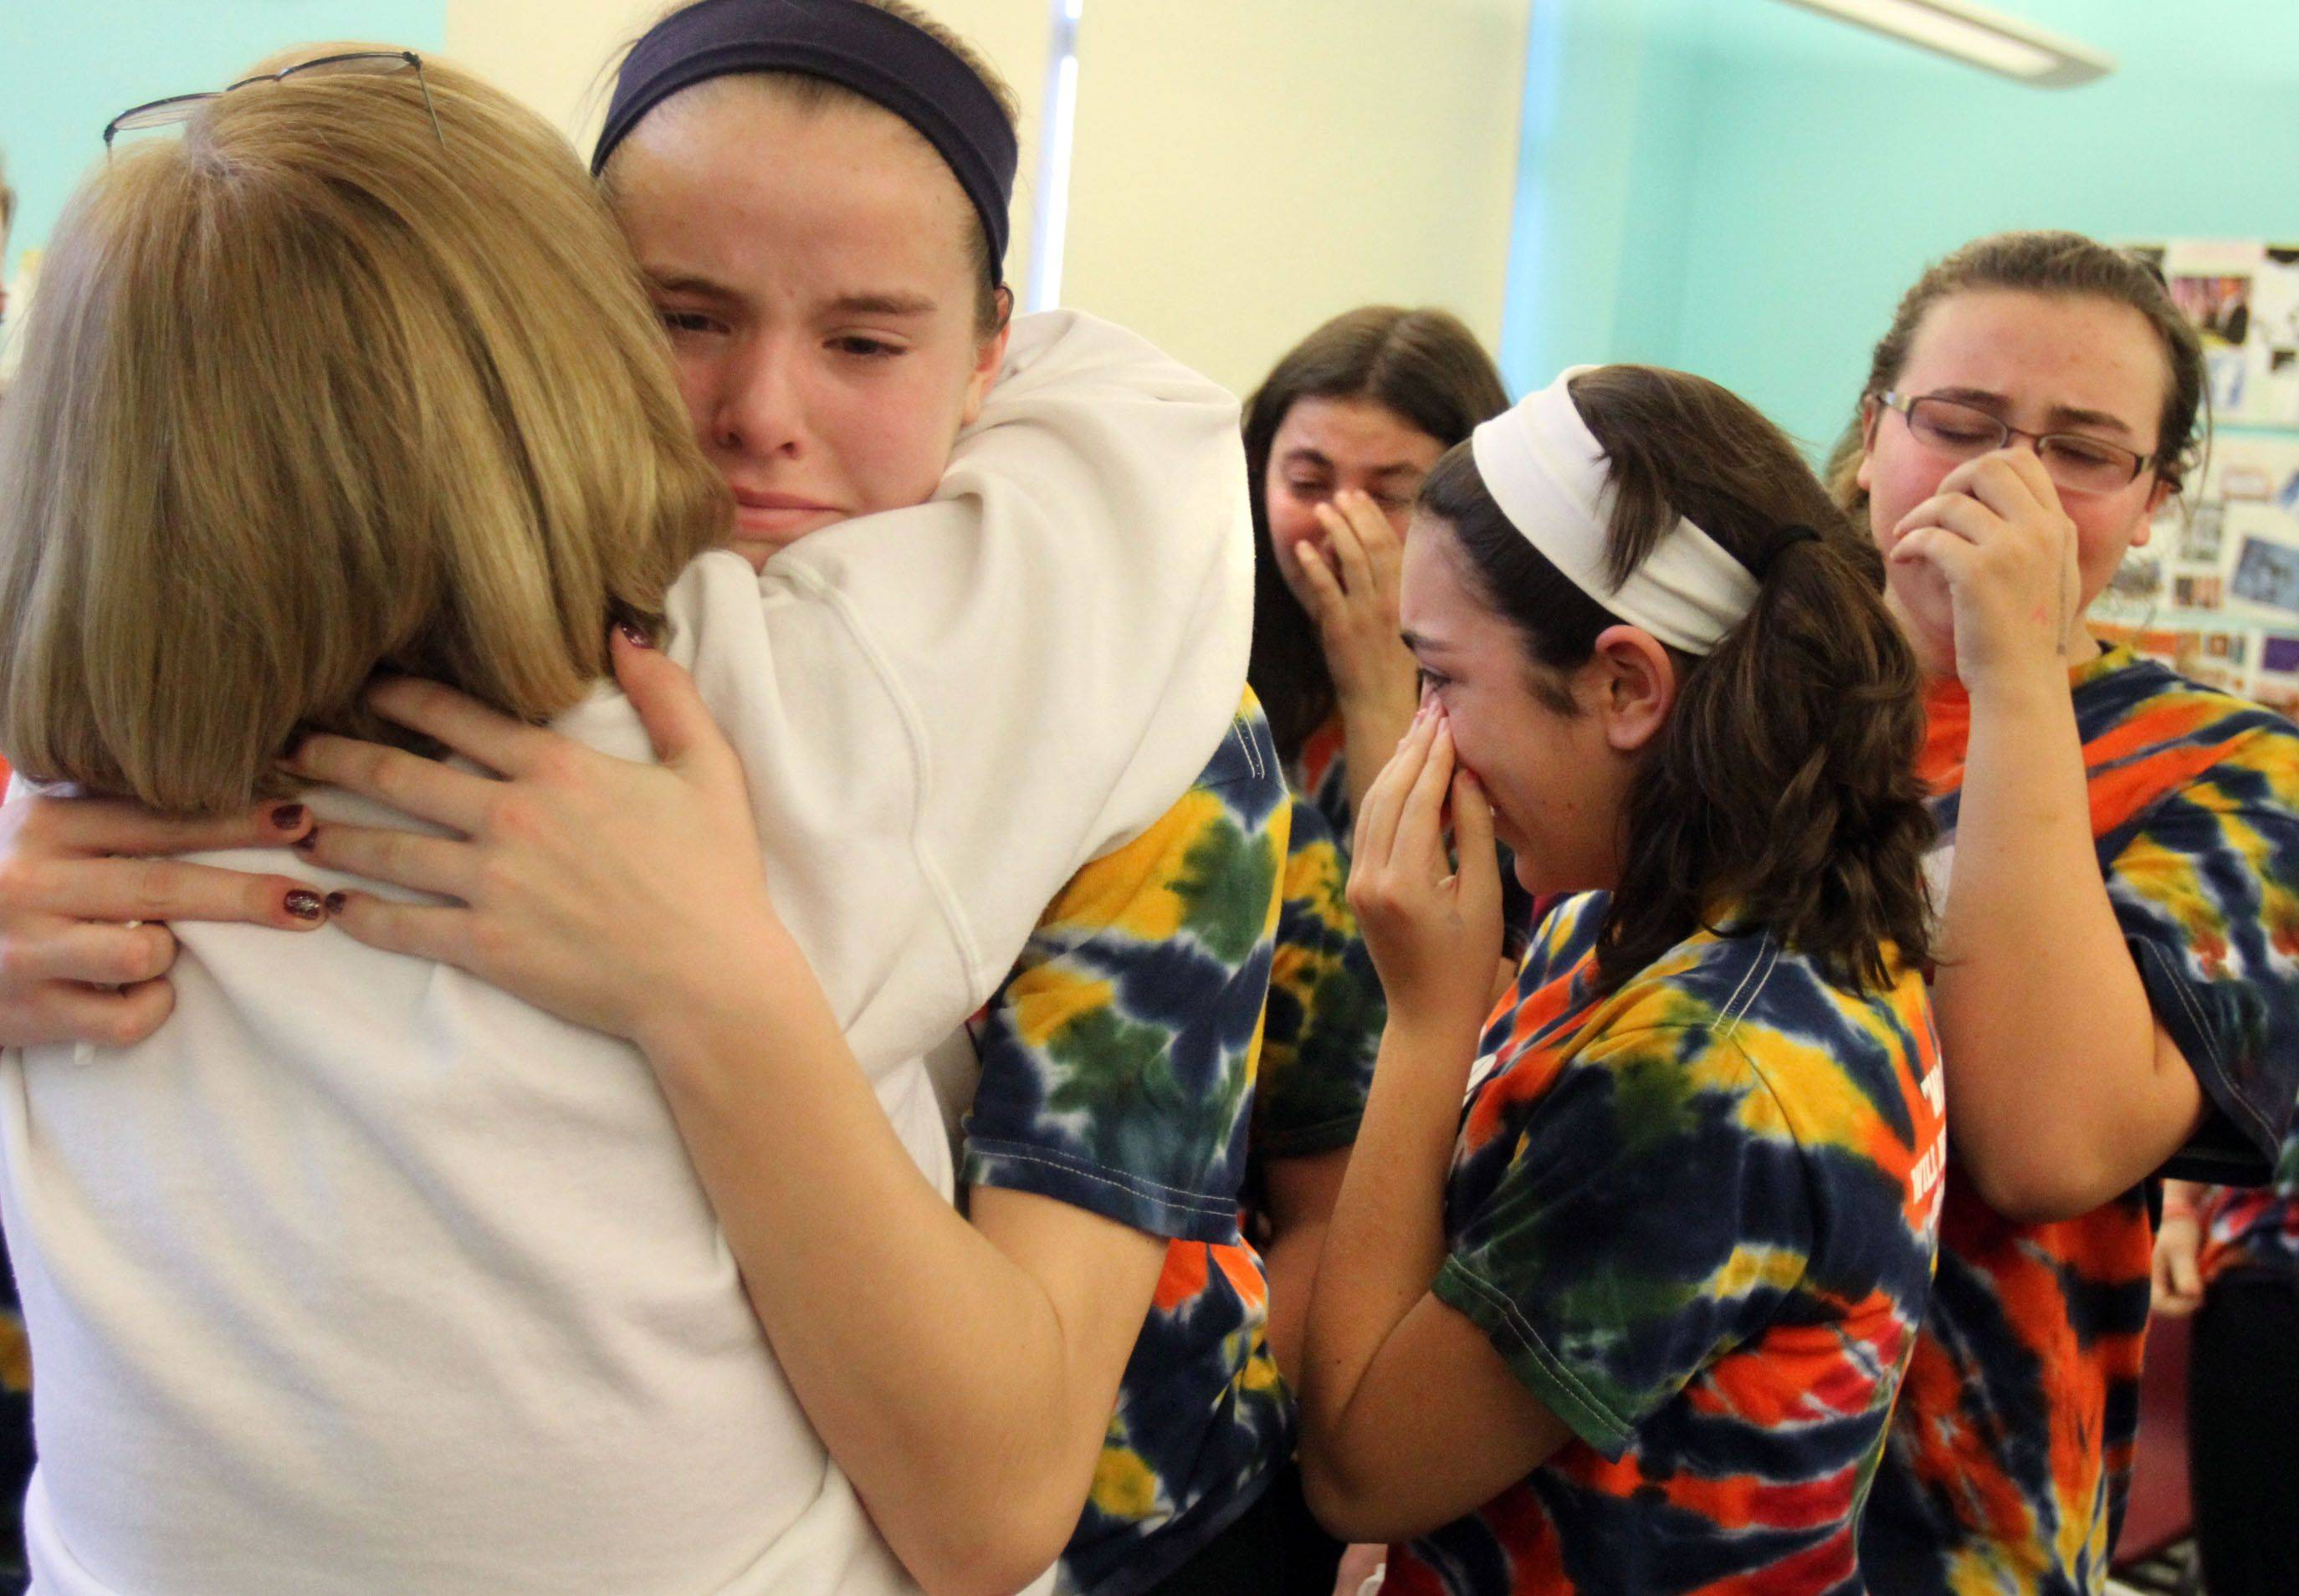 Debbie Sykes gets a hug from eighth grader Catherine Sherwood after St. Raymond students held an event to celebrate the life of former classmate Joey Sykes. The students presented his parents, Joe and Debbie Sykes, with a framed photograph of the St. Raymond Class of 2011 at the school in Mount Prospect on Thursday, January 6. The Mount Prospect school hosted its seventh-annual Joey Sykes Boys Basketball Tournament Thursday night, named after Joey, who died of cancer.